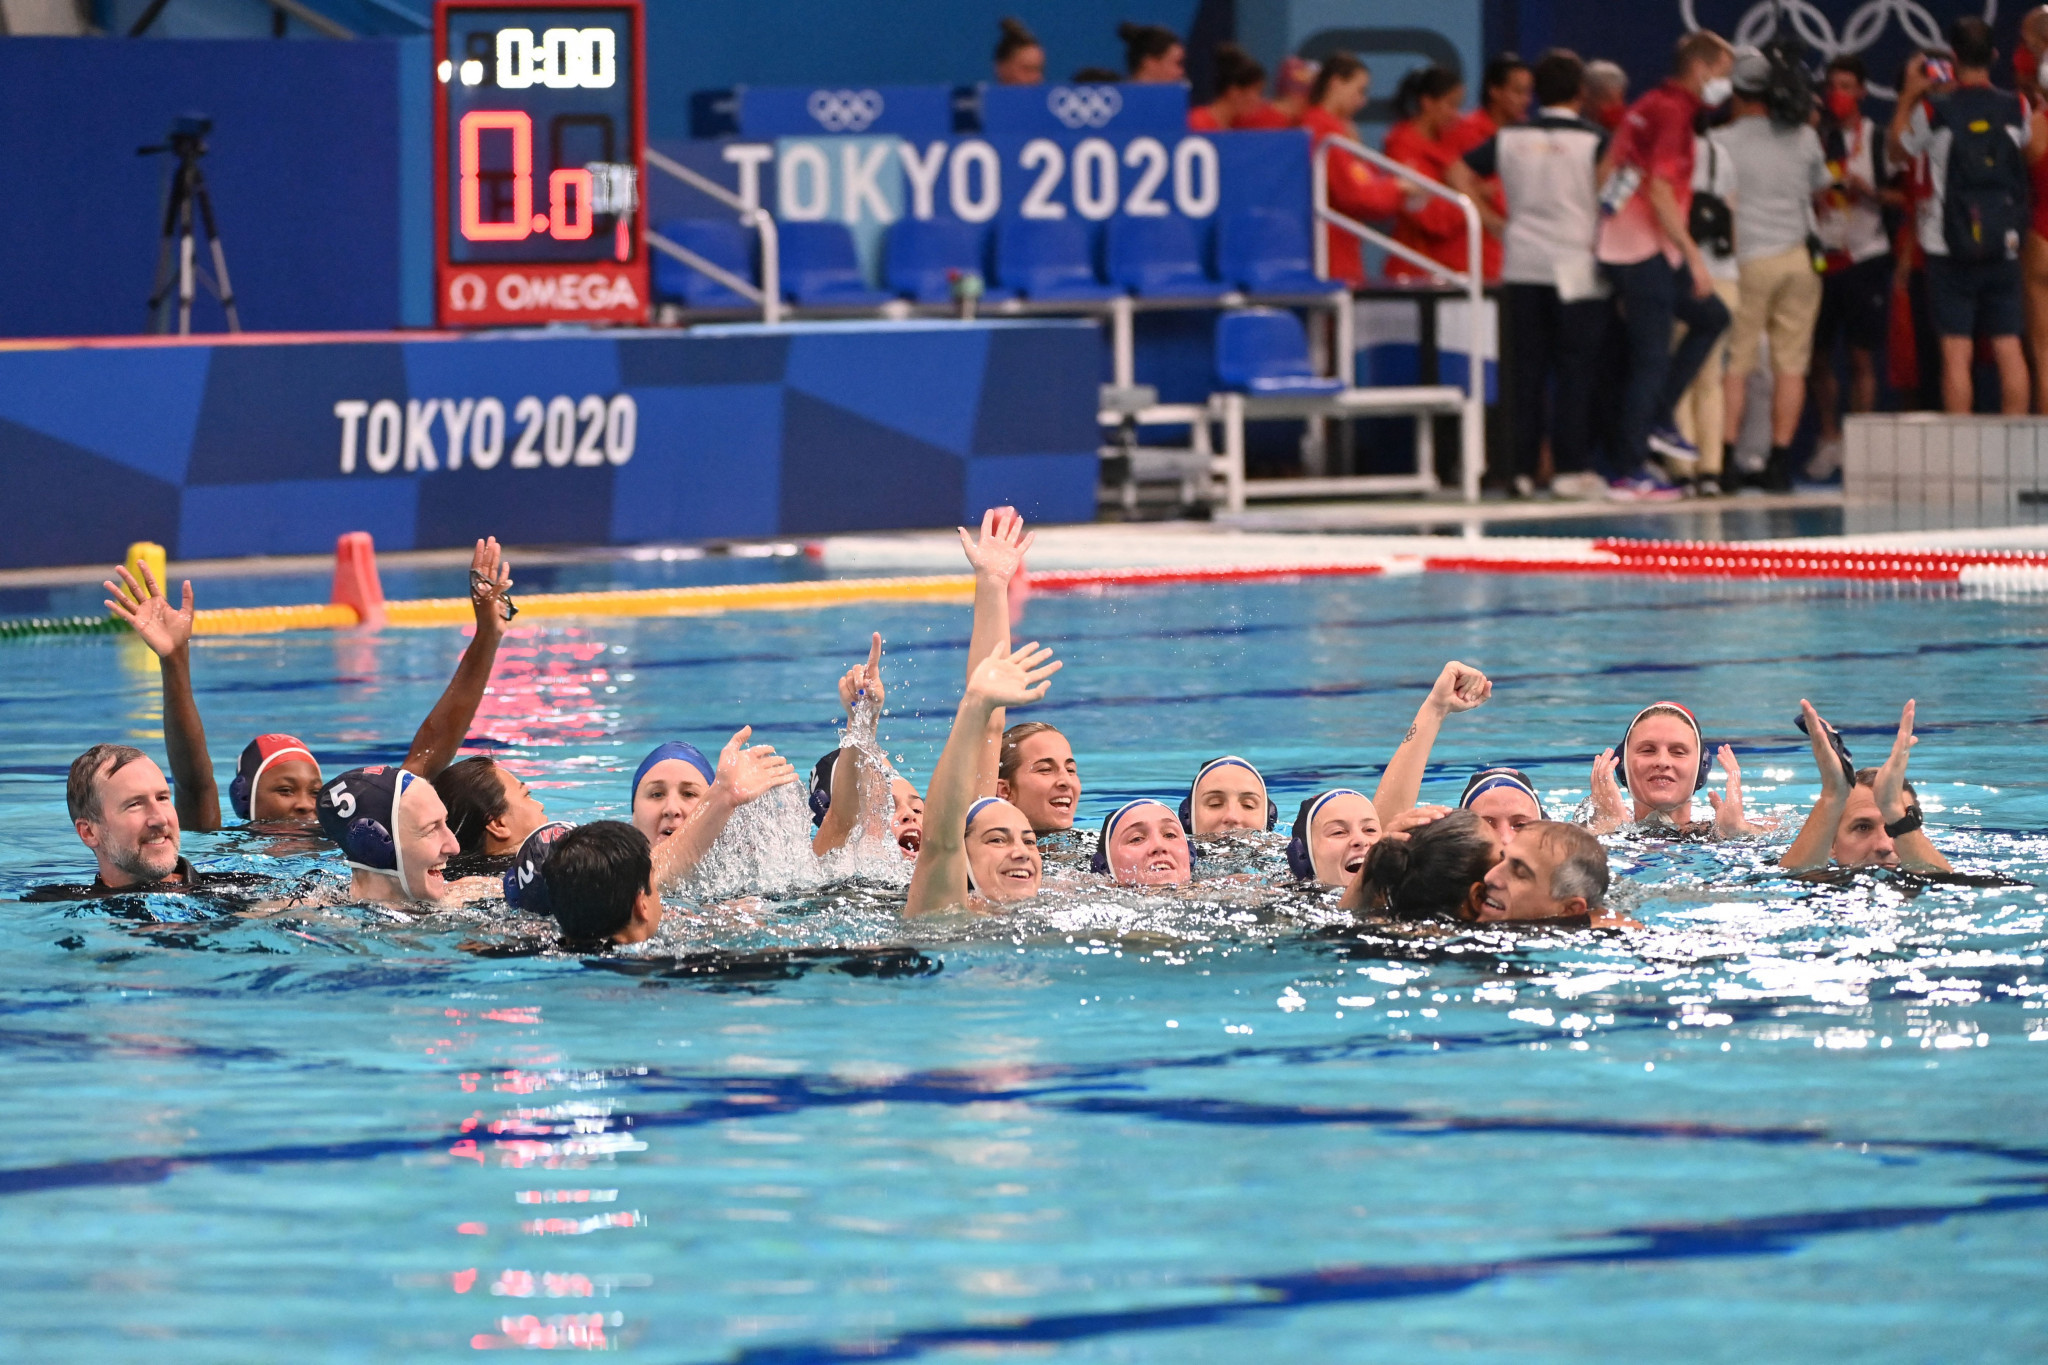 United States win third consecutive Olympic women's water polo gold as Spain brushed aside